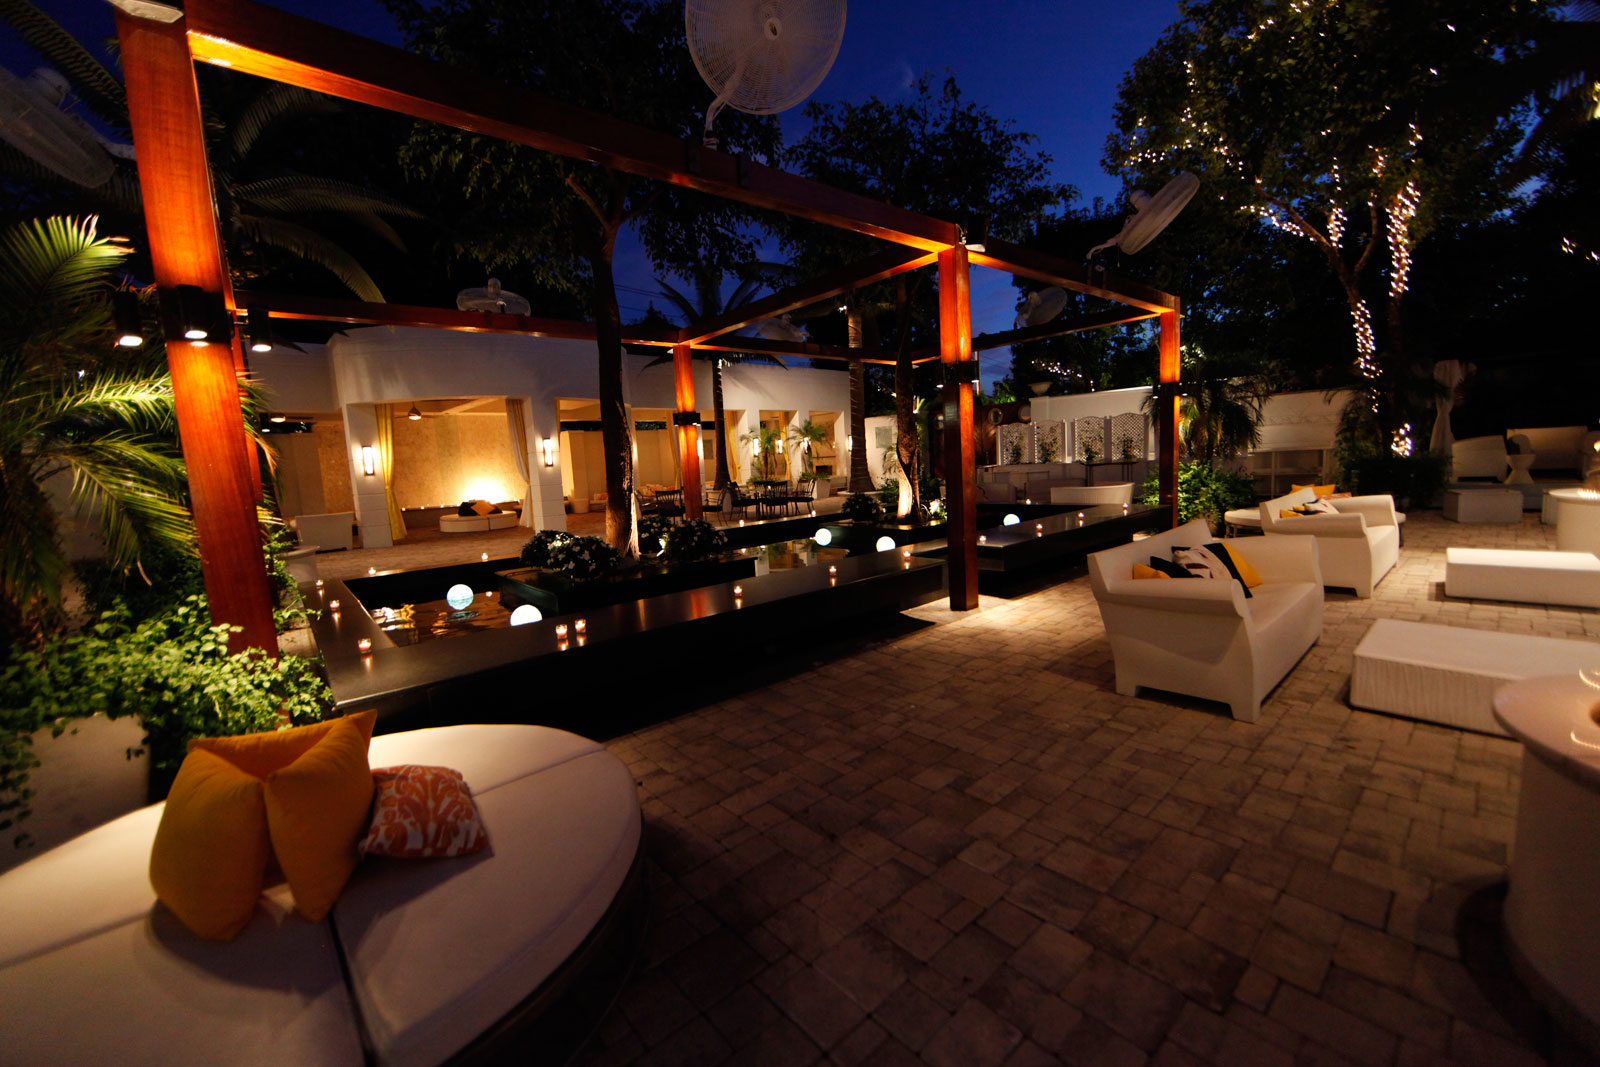 Chateau Briand Caterers Outdoor Garden